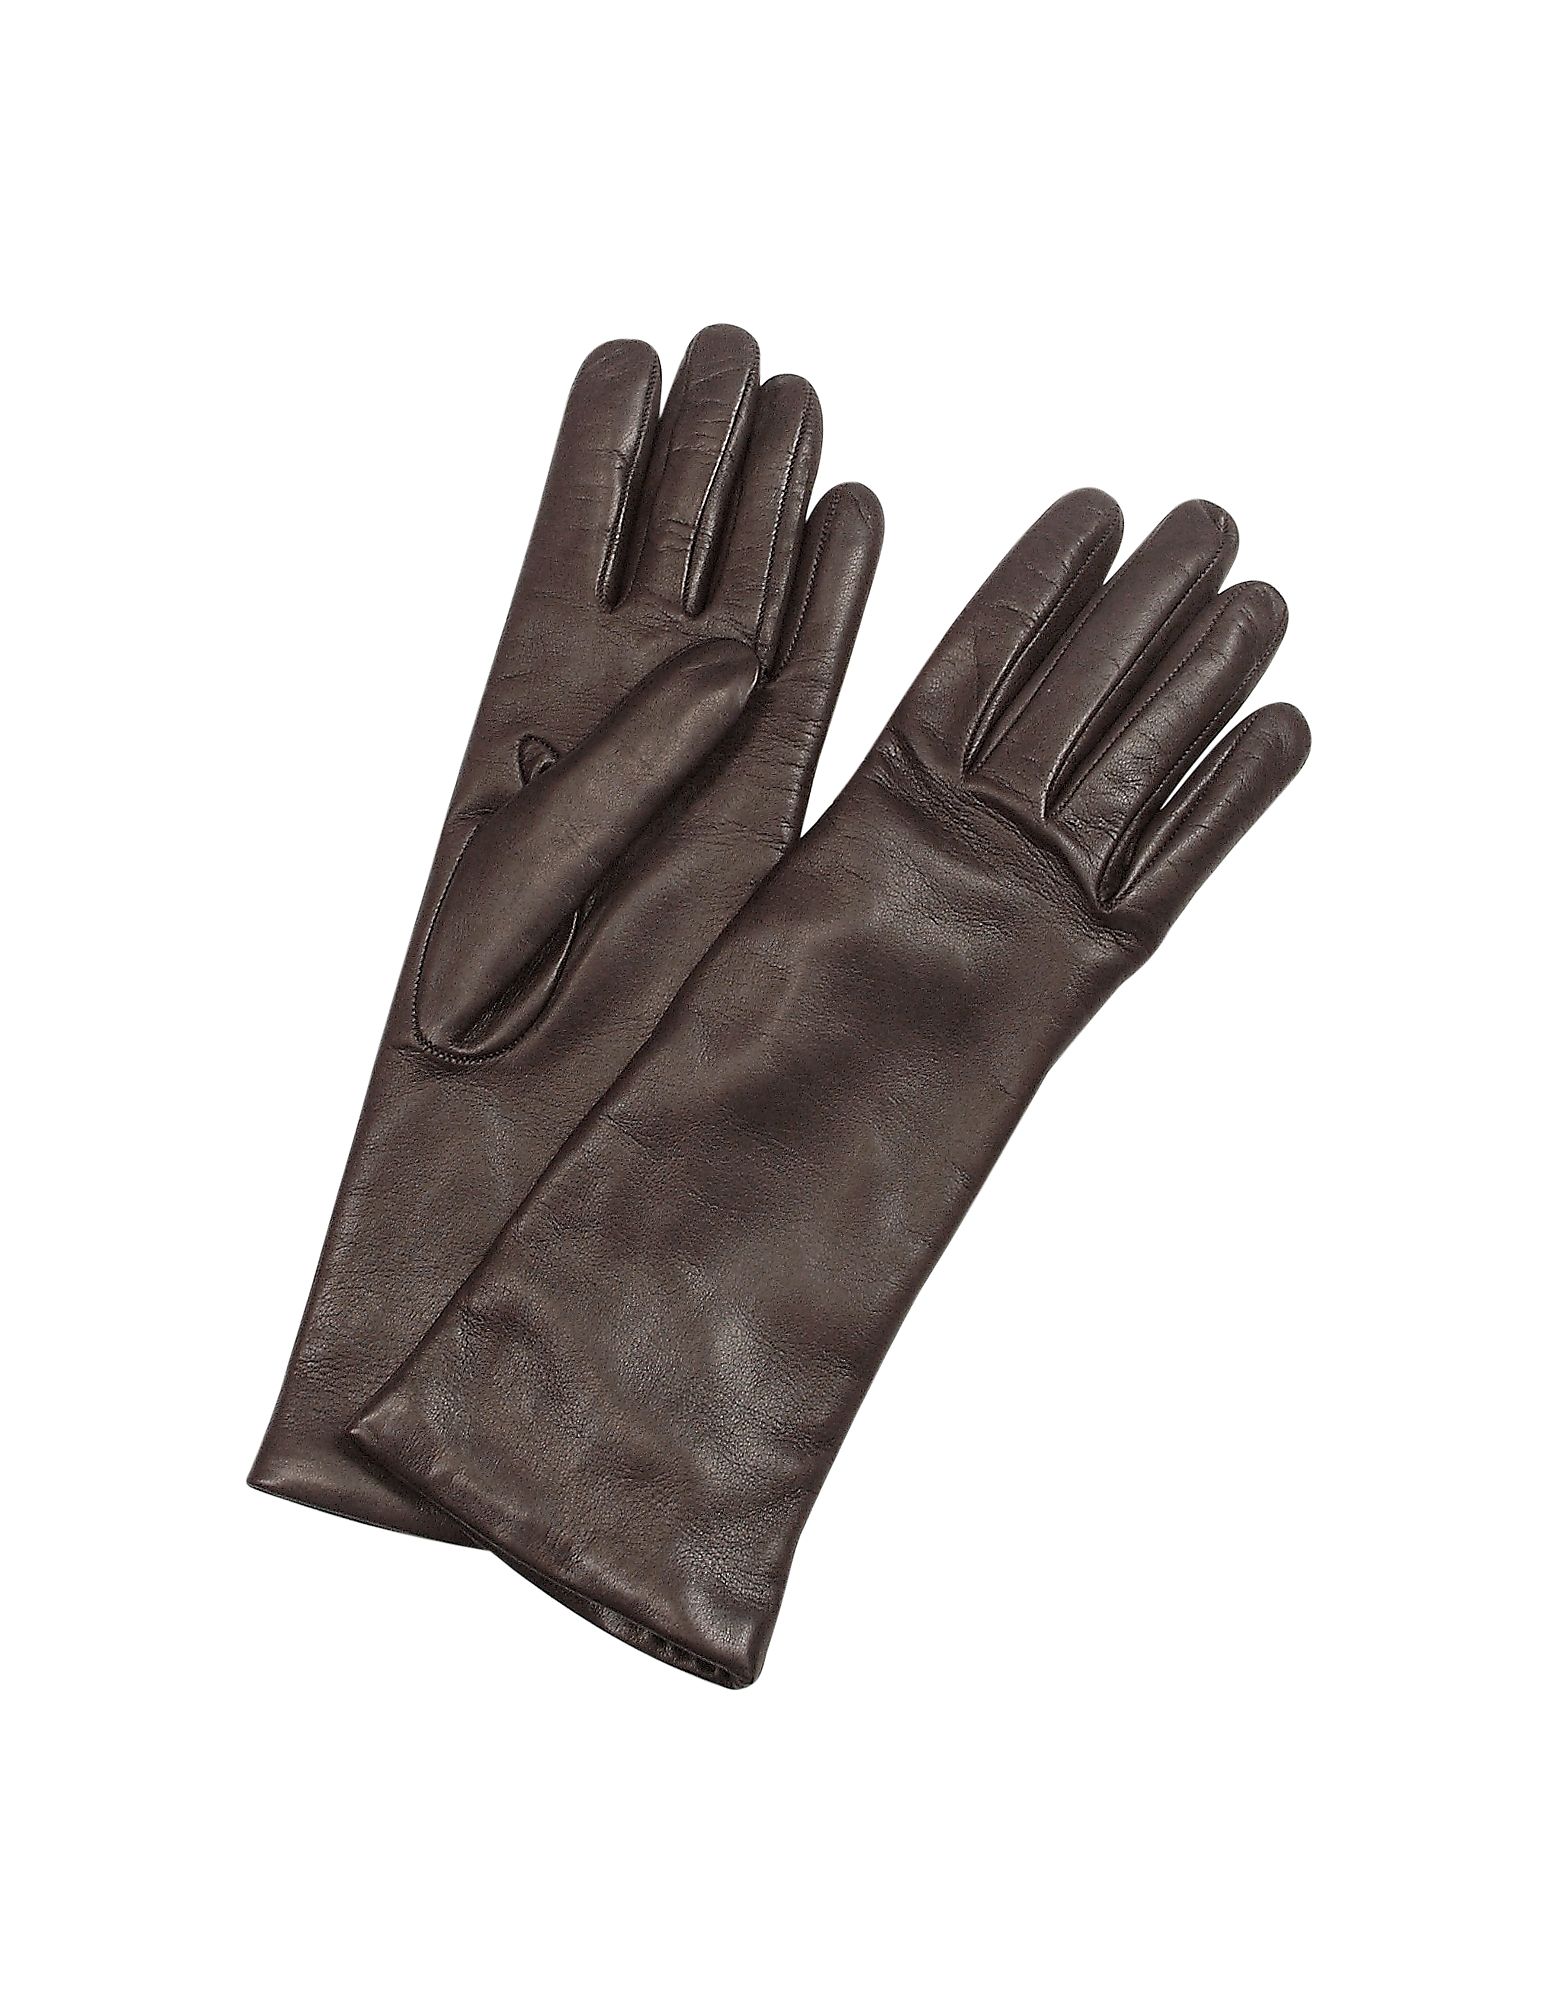 Vintage Style Gloves- Long, Wrist, Evening, Day, Leather, Lace Forzieri Designer Womens Gloves Womens Cashmere Lined Dark Brown Italian Leather Long Gloves $162.00 AT vintagedancer.com